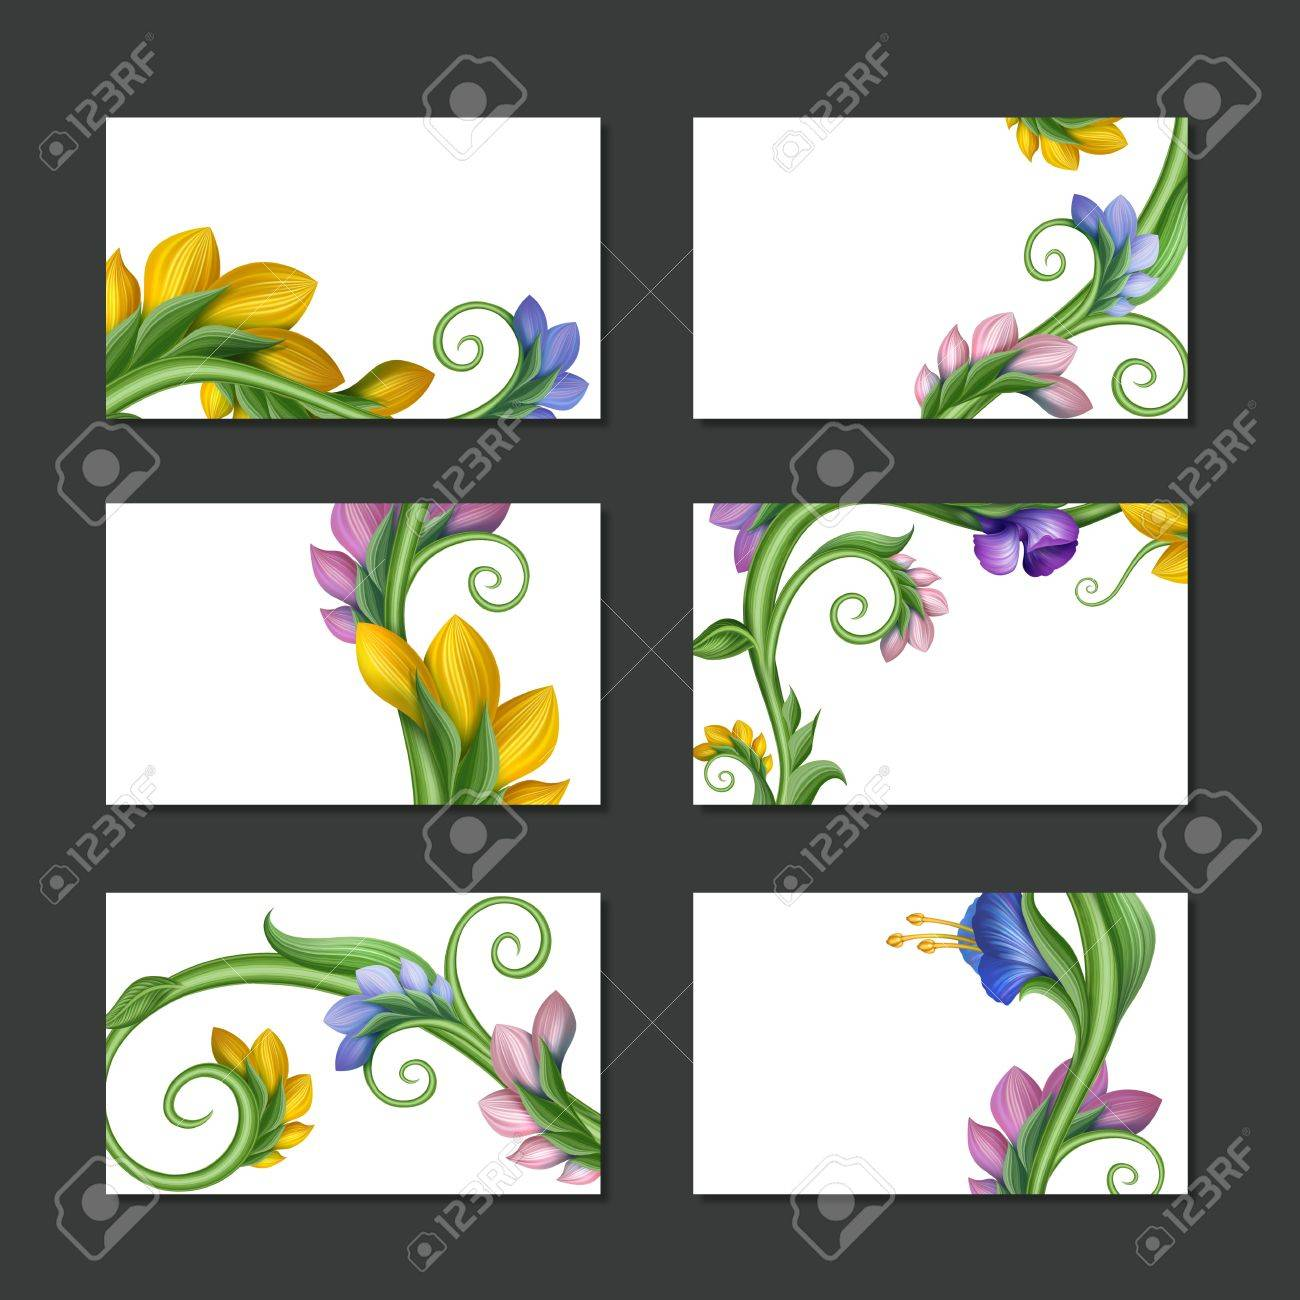 Flower labels and banners business card template collection banco de flower labels and banners business card template collection imagens 19702702 reheart Image collections